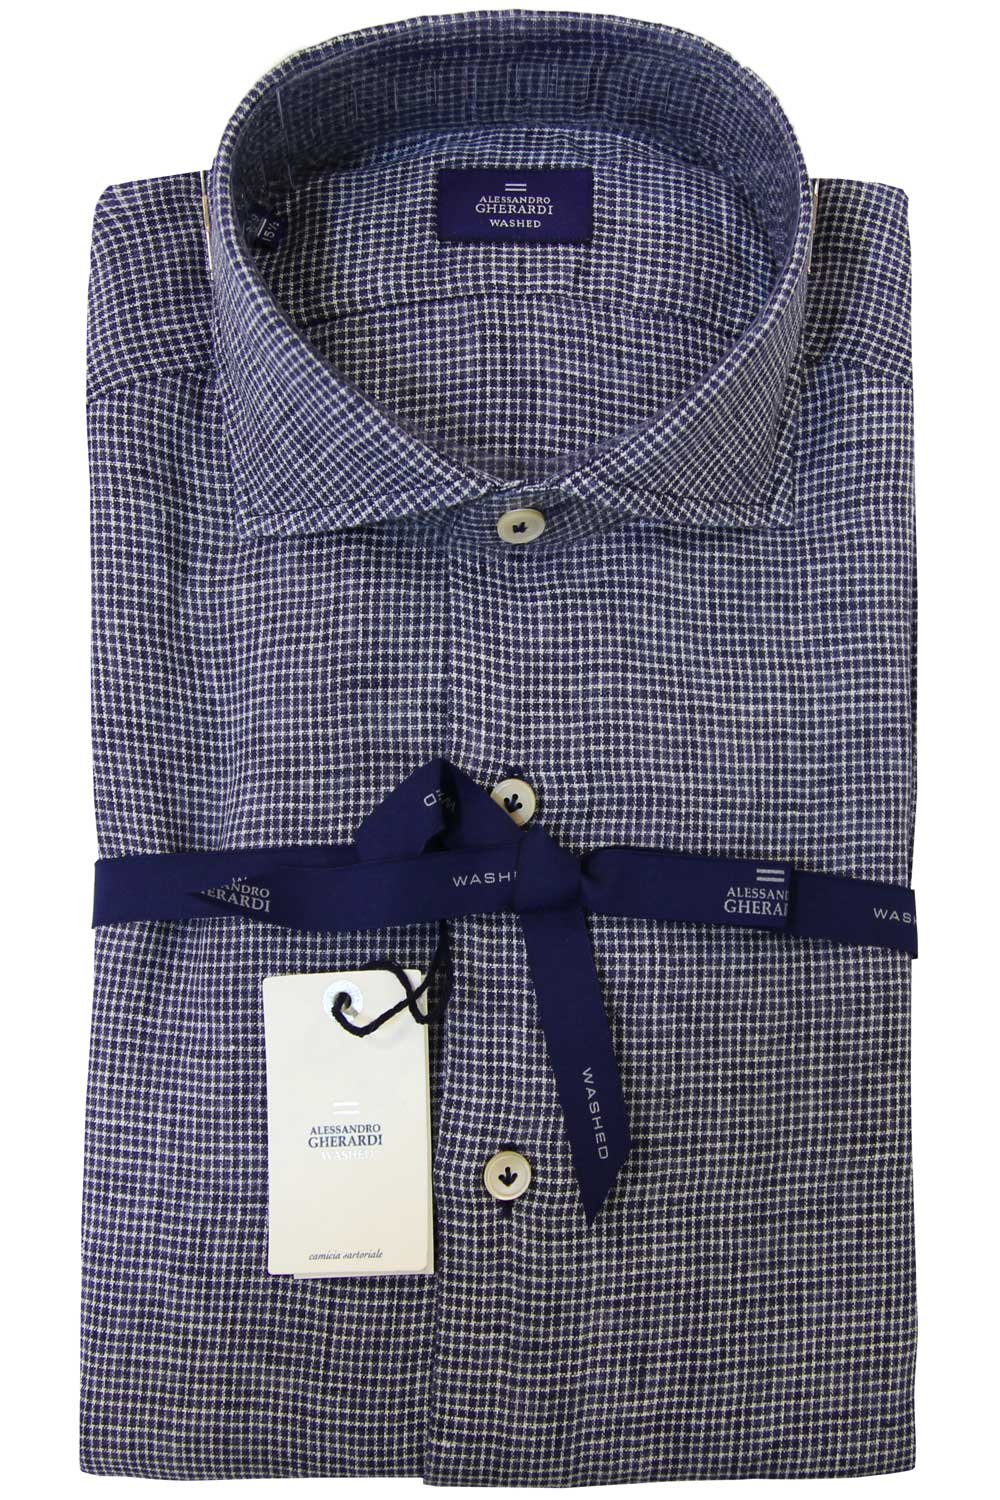 Image of Camicia in lino - GHERARDI